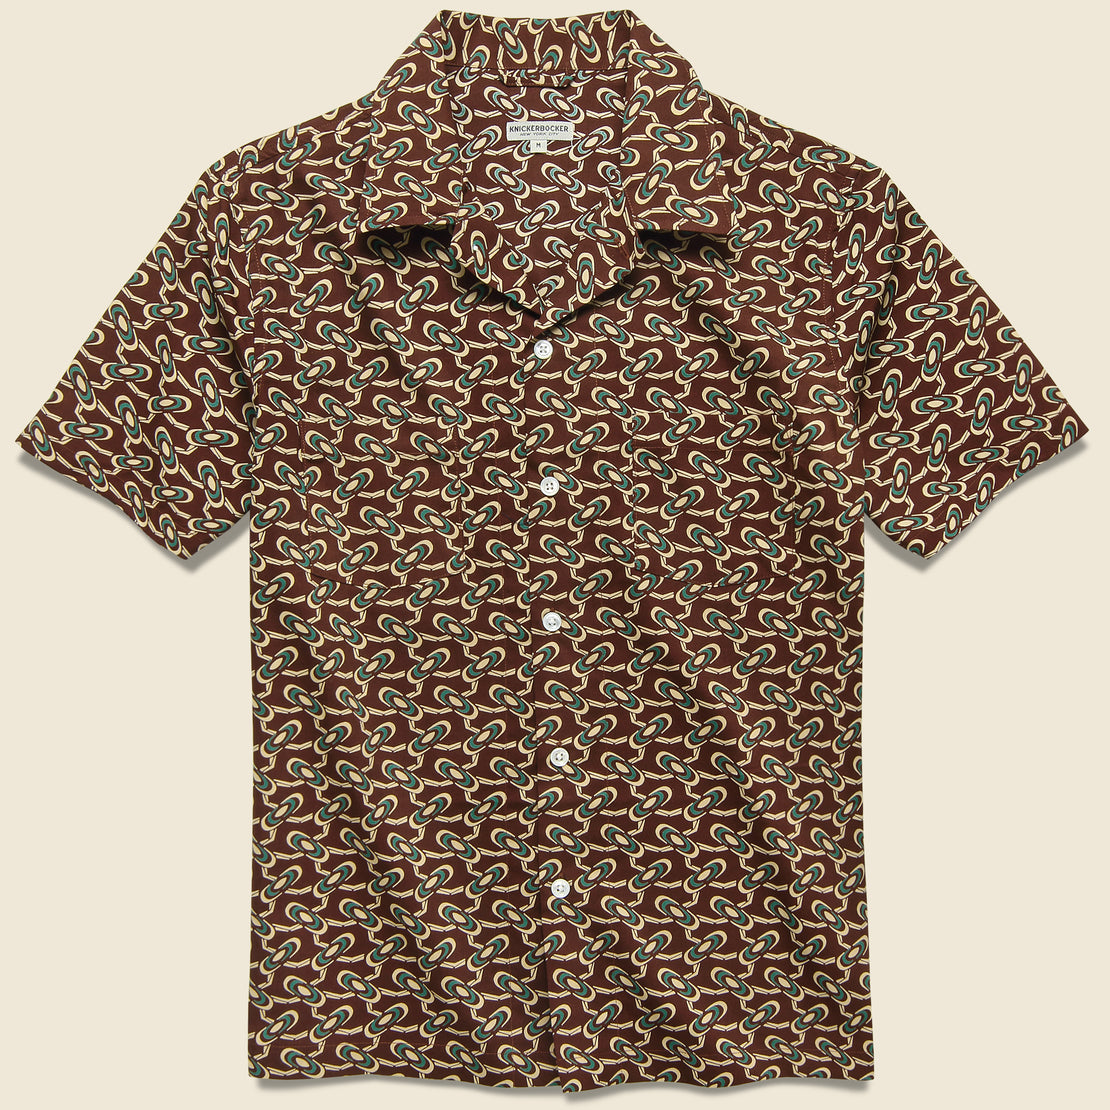 Knickerbocker Comma Camp Shirt - Tripper Rust